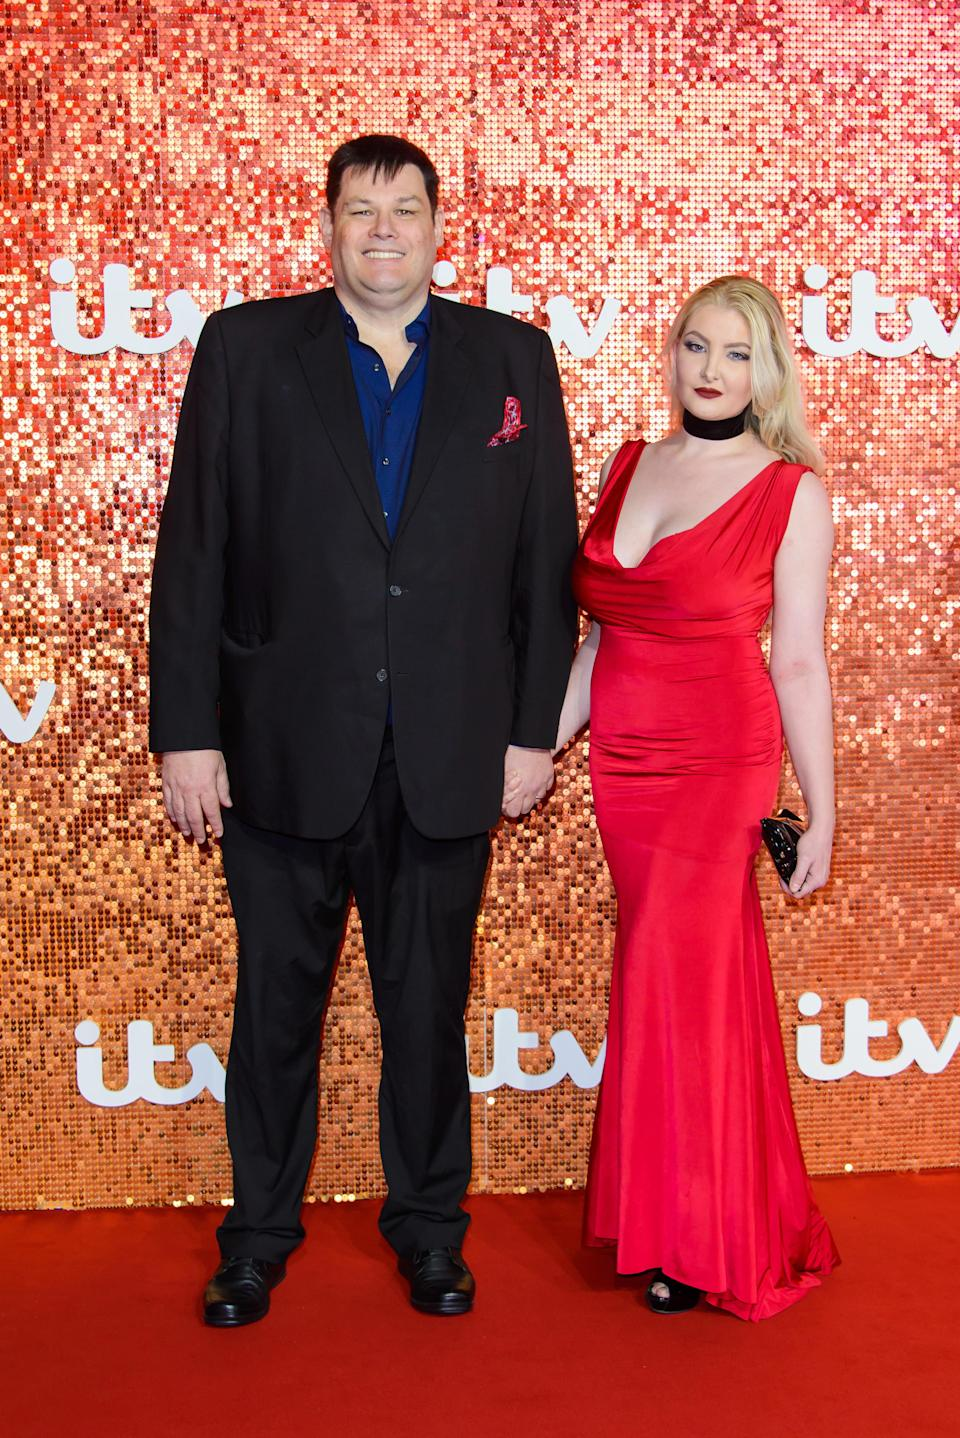 """Mark Labbett seems on <em>The Chase</em>. (Invision/AP)"""" src=""""https://s.yimg.com/ny/api/res/1.2/l9AtTcPFTB_Yp1tcIMZuDw–/YXBwaWQ9aGlnaGxhbmRlcjt3PTk2MDtoPTY0MA–/https://s.yimg.com/uu/api/res/1.2/gumu56qUSFC7Cb2fL2UI0w–~B/aD00MTY0O3c9NjI0NjtzbT0xO2FwcGlkPXl0YWNoeW9u/https://media-mbst-pub-ue1.s3.amazonaws.com/creatr-images/2020-01/fb33ffc0-4421-11ea-b737-47f5b654b66e"""" data-src=""""https://s.yimg.com/ny/api/res/1.2/l9AtTcPFTB_Yp1tcIMZuDw–/YXBwaWQ9aGlnaGxhbmRlcjt3PTk2MDtoPTY0MA–/https://s.yimg.com/uu/api/res/1.2/gumu56qUSFC7Cb2fL2UI0w–~B/aD00MTY0O3c9NjI0NjtzbT0xO2FwcGlkPXl0YWNoeW9u/https://media-mbst-pub-ue1.s3.amazonaws.com/creatr-images/2020-01/fb33ffc0-4421-11ea-b737-47f5b654b66e""""/>Mark Labbett seems on The Chase. (Invision/AP)</p> <p>The Chase star Mark Labbett has stated he """"barely ate"""" for 2 weeks whereas struck down with a thriller sickness earlier this yr, which he suspects might've been the coronavirus.</p> <p>It comes after the brainiac has lately opened up on his 5 stone weight reduction which was kick-started when he was unwell.</p> <p>Showing on Free Ladies on Tuesday, he spoke on the signs he skilled again in February, stating: """"The foremost one was full lack of style and odor and no urge for food.</p> <p><strong>Learn extra: </strong><strong>Mark Labbett 'gutted' new quizzer is becoming a member of </strong><strong>The Chase</strong></p> <p>""""I had the cough and the fever and bouts of exhaustion however as a result of I did not have issues respiration – and this was again in February which was the primary symptom – I believed 'I've simply obtained some sort of virus'.</p> <p>""""For 2 weeks I barely ate. On the time I used to be pondering 'outcome!'.""""</p> <p>In an interview with The Solar, Labbett revealed he had not been examined for the virus in February on account of restricted testing capacities on the time.</p> <p>Final week noticed the 54-year-old share a photograph of his altering body as he demonstrated how his trousers have been now too large for him. H"""